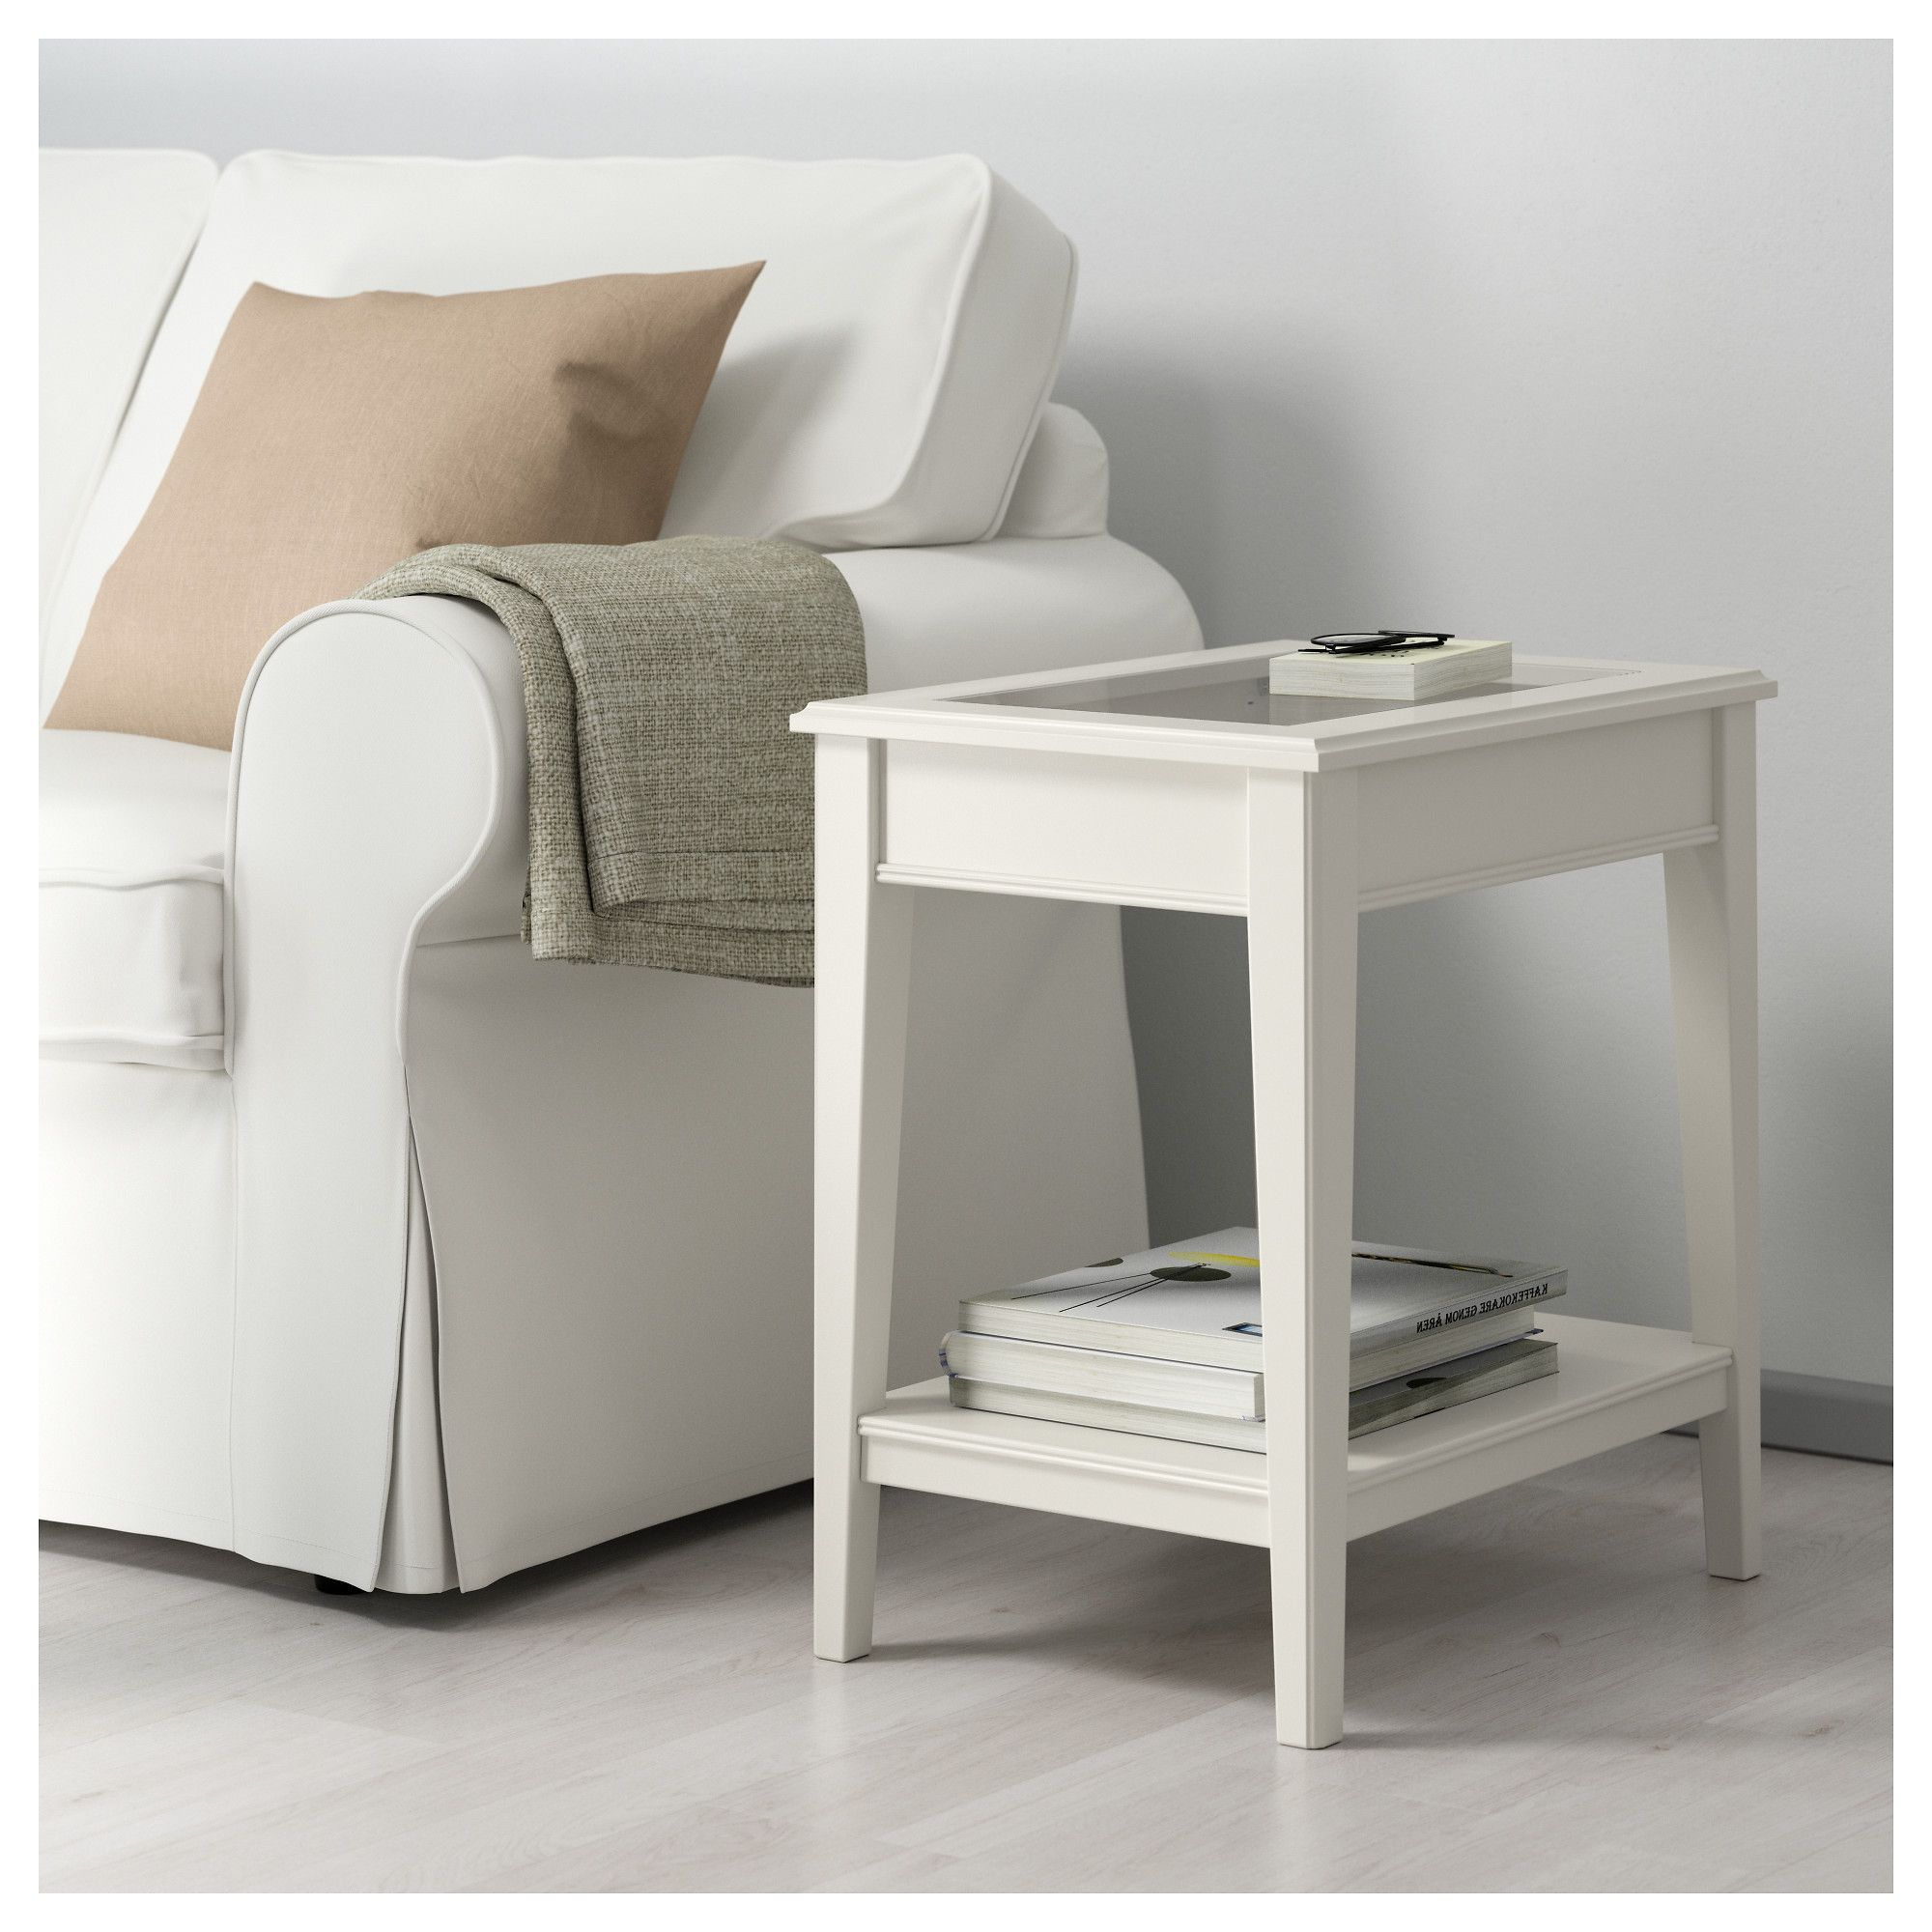 Liatorp Beistelltisch Weiss Glas Ikea Osterreich Ikea Side Table White Side Tables Liatorp